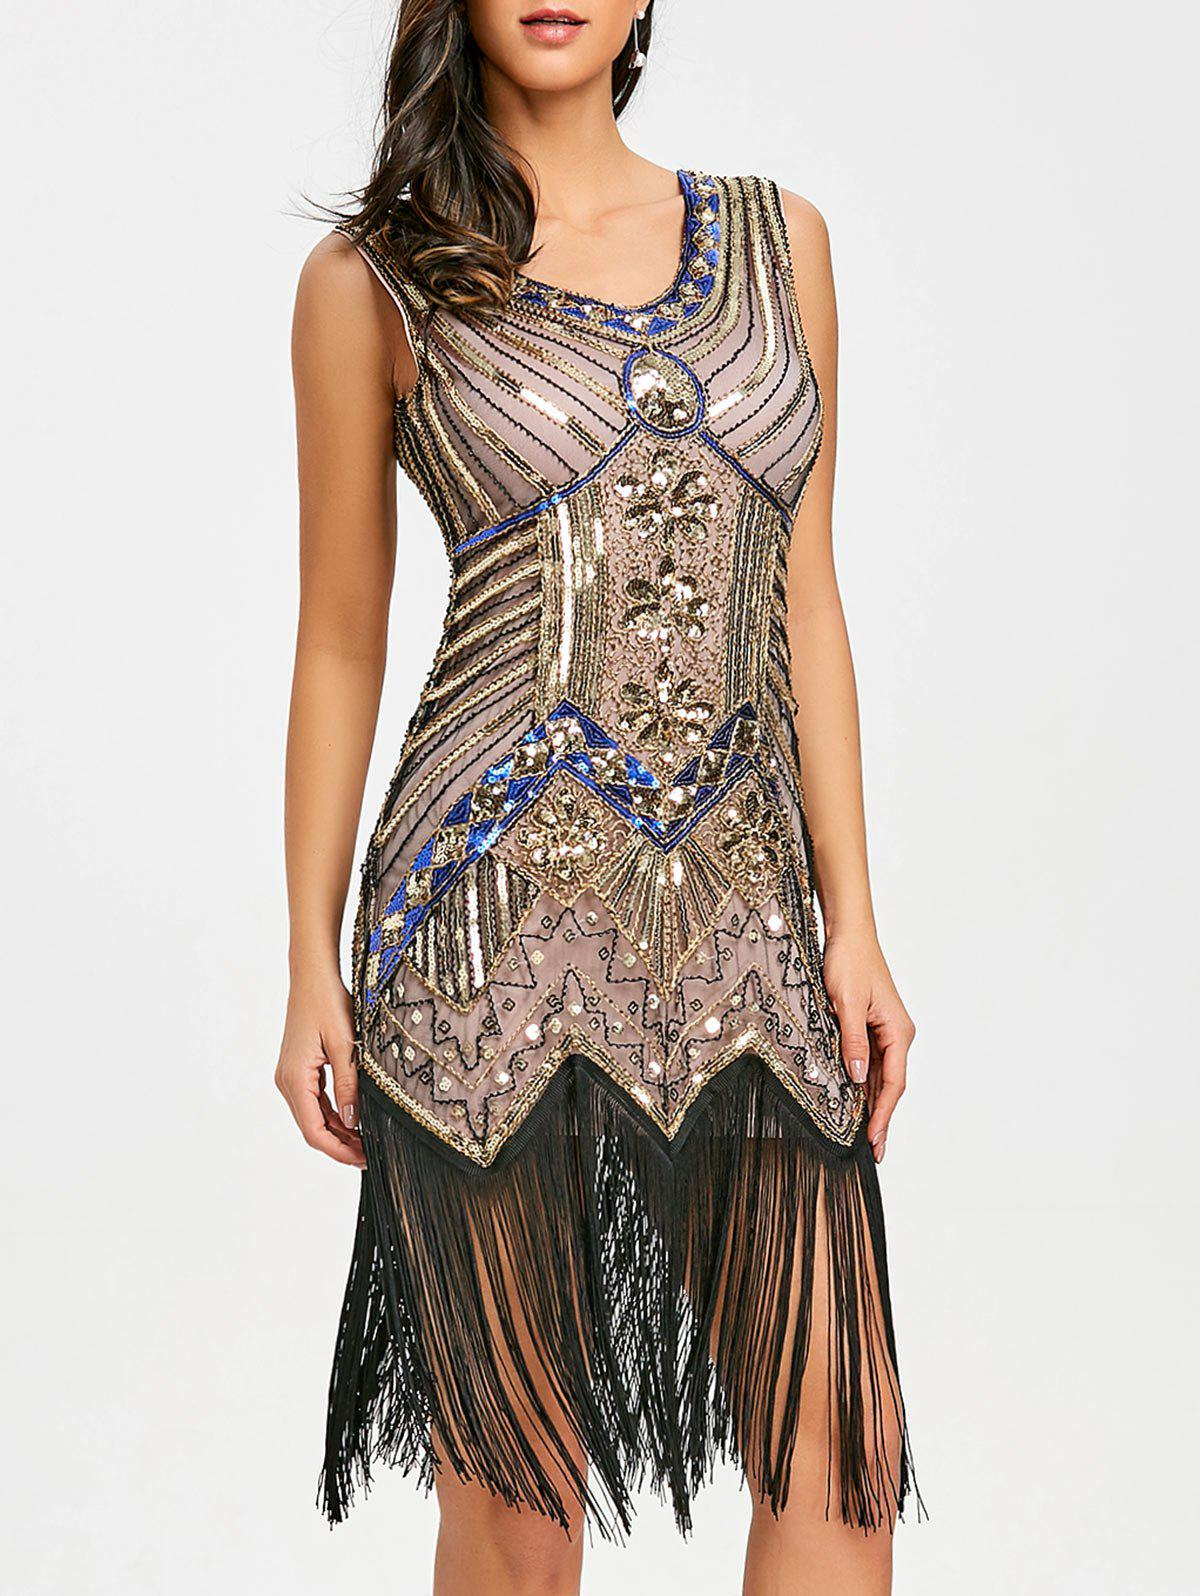 Fringed Sequin Party Midi Dress - APRICOT XL